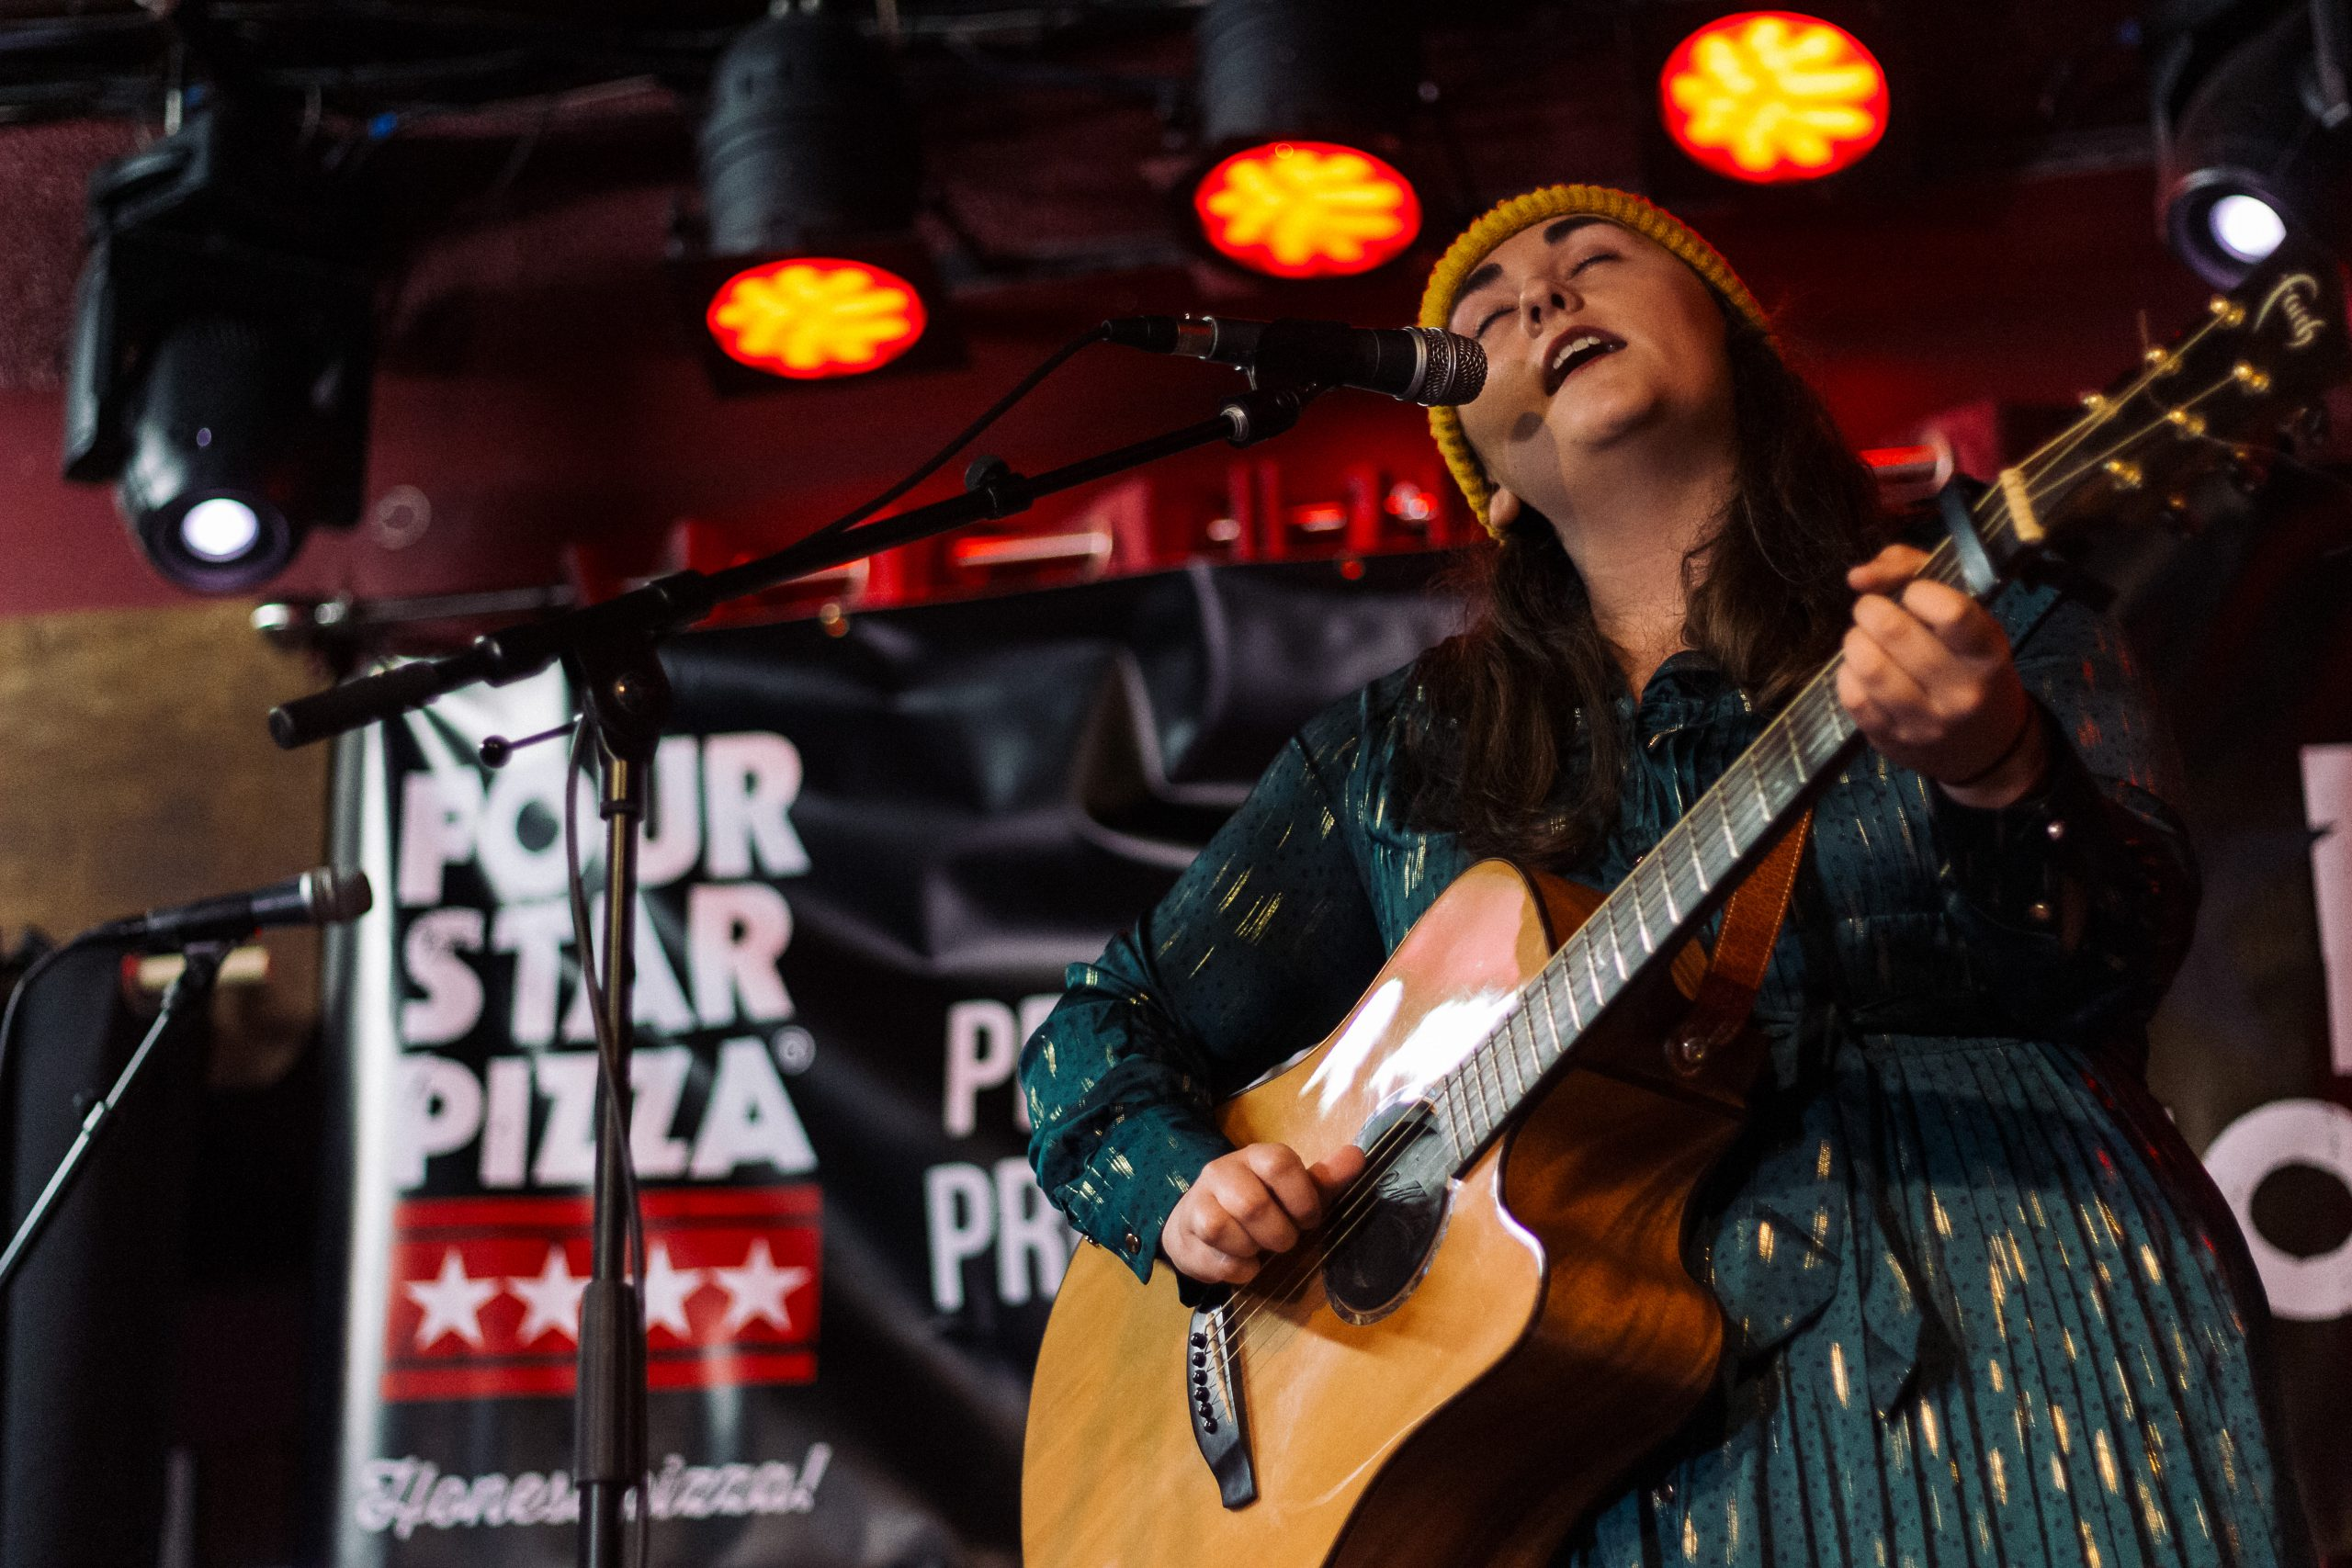 A STAR IS BORN: Star Nation 2020 winner Rachel Grace from Wexford performs at the Roisin Dubh in Galway in the Grand Final of the all-Ireland music competition organised by Four Star Pizza.